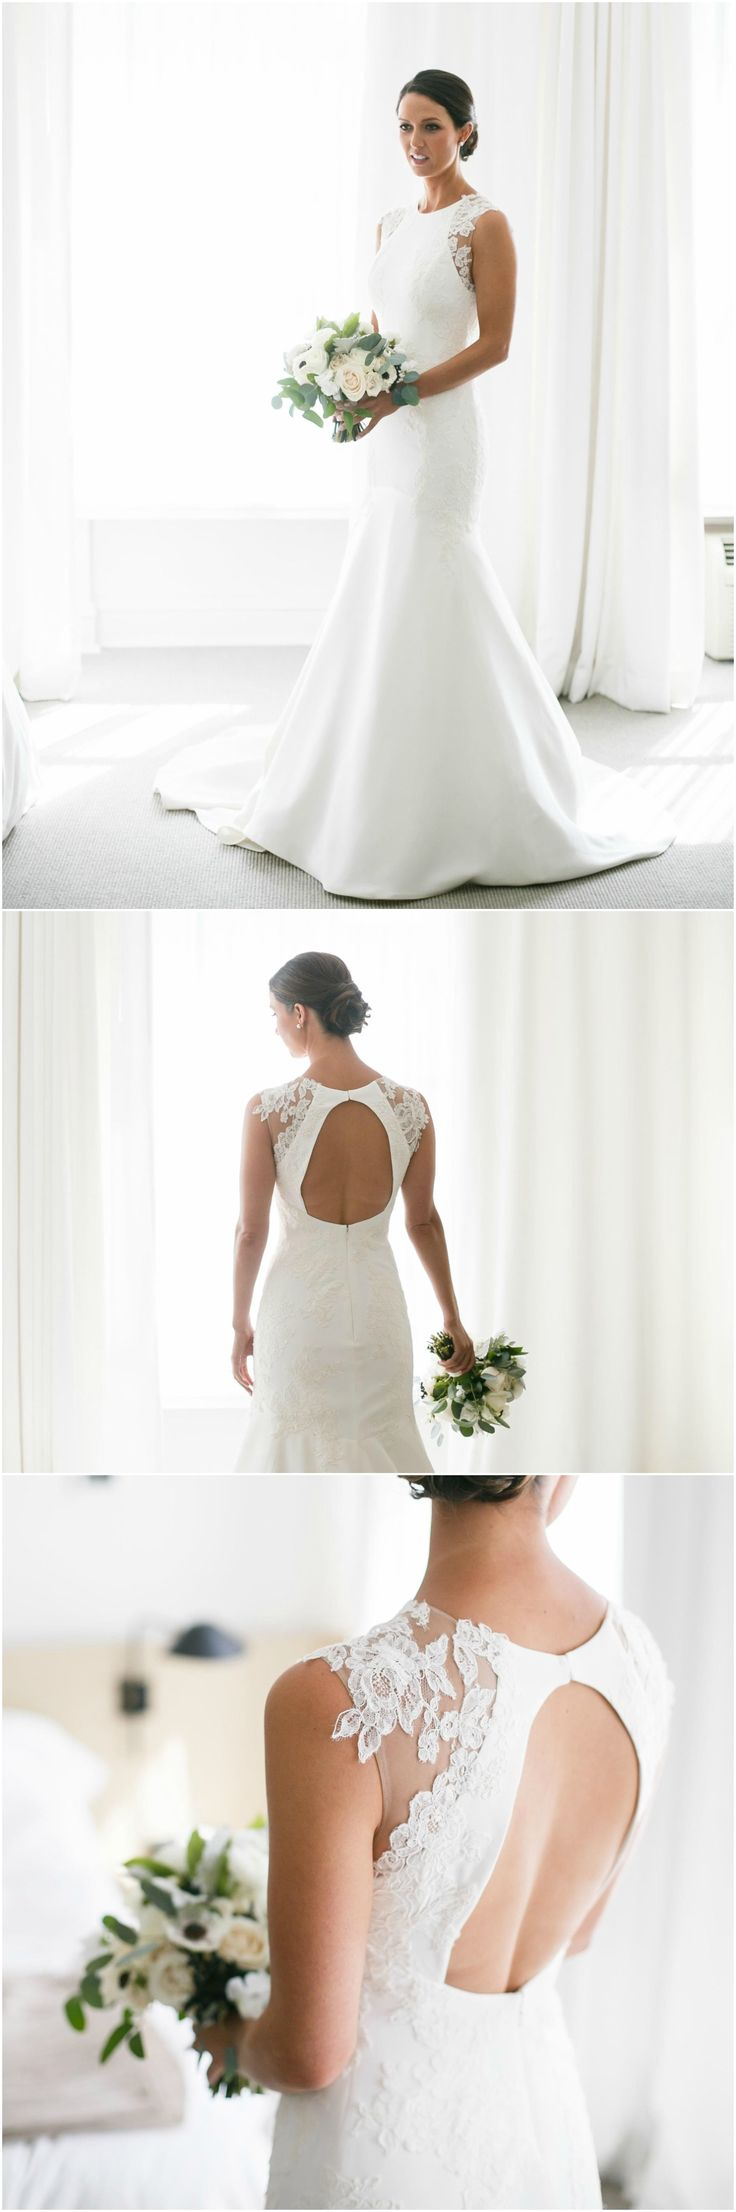 Satin wedding dress, white, keyhole back, lace cap sleeve, classic elegance // Averyhouse